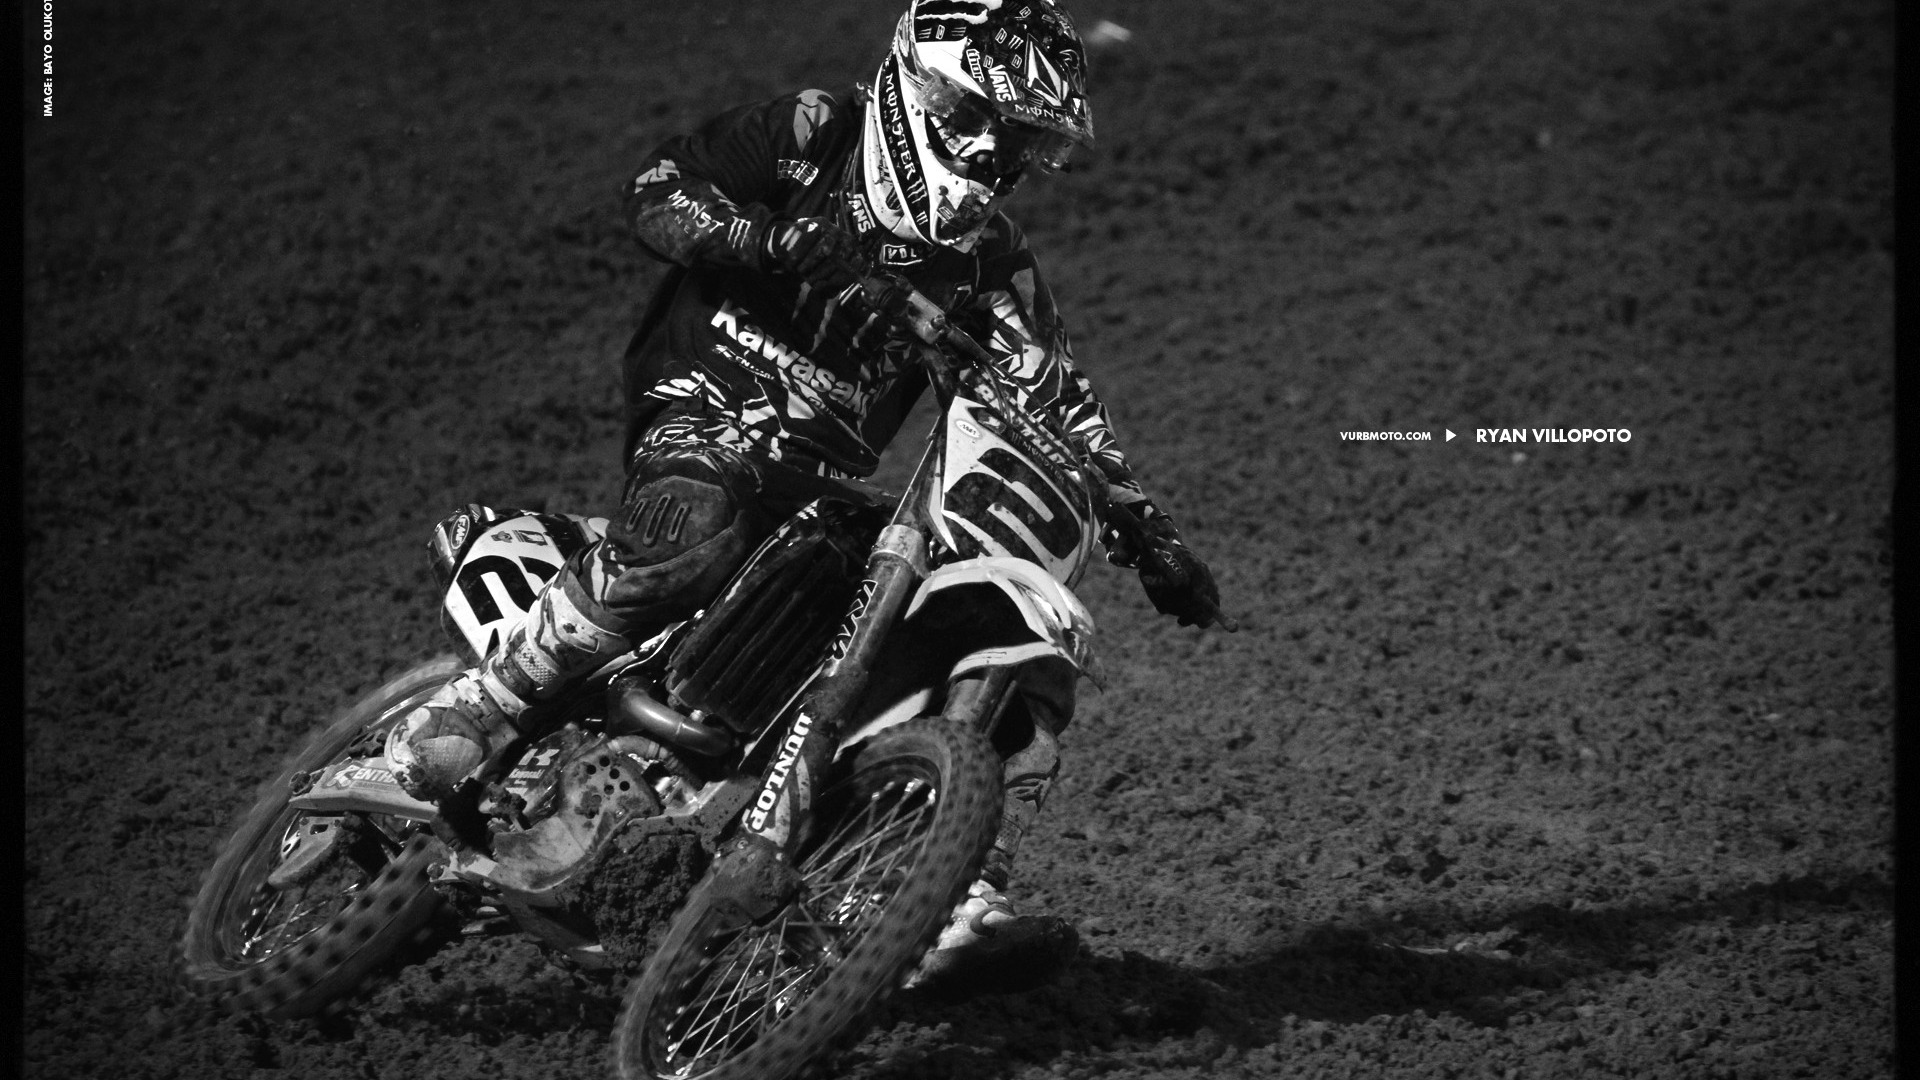 AMA Supercross Fourth Stop Auckland Ryan Villopoto Wallpaper  1920x1080 Download